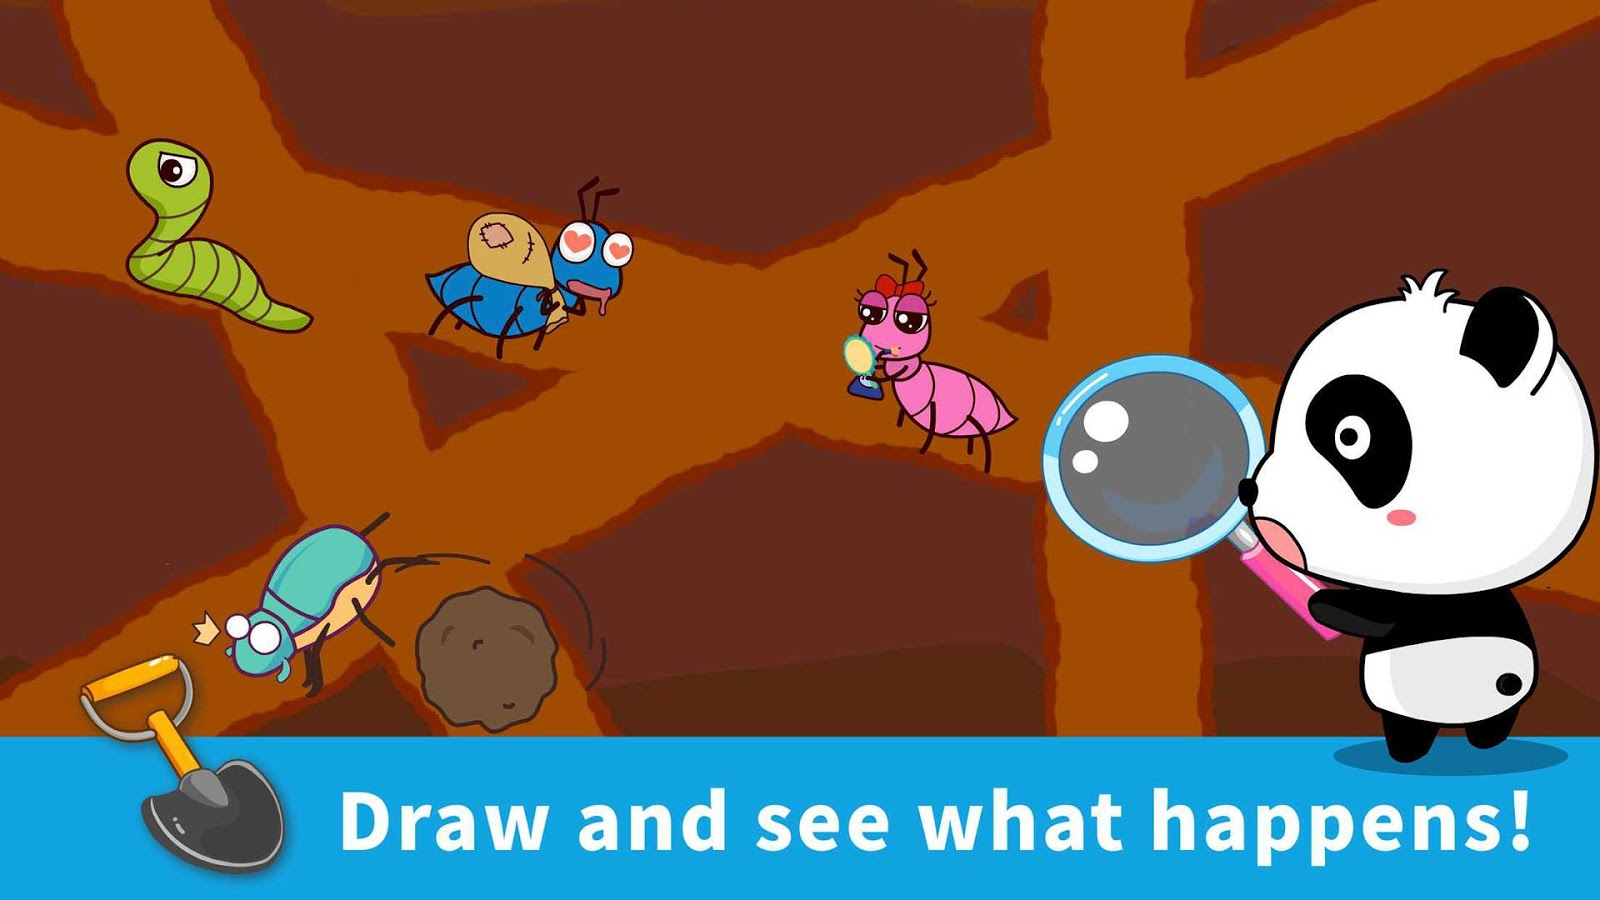 My Graffiti By Babybus 88730 Apk Download Android Educational Games